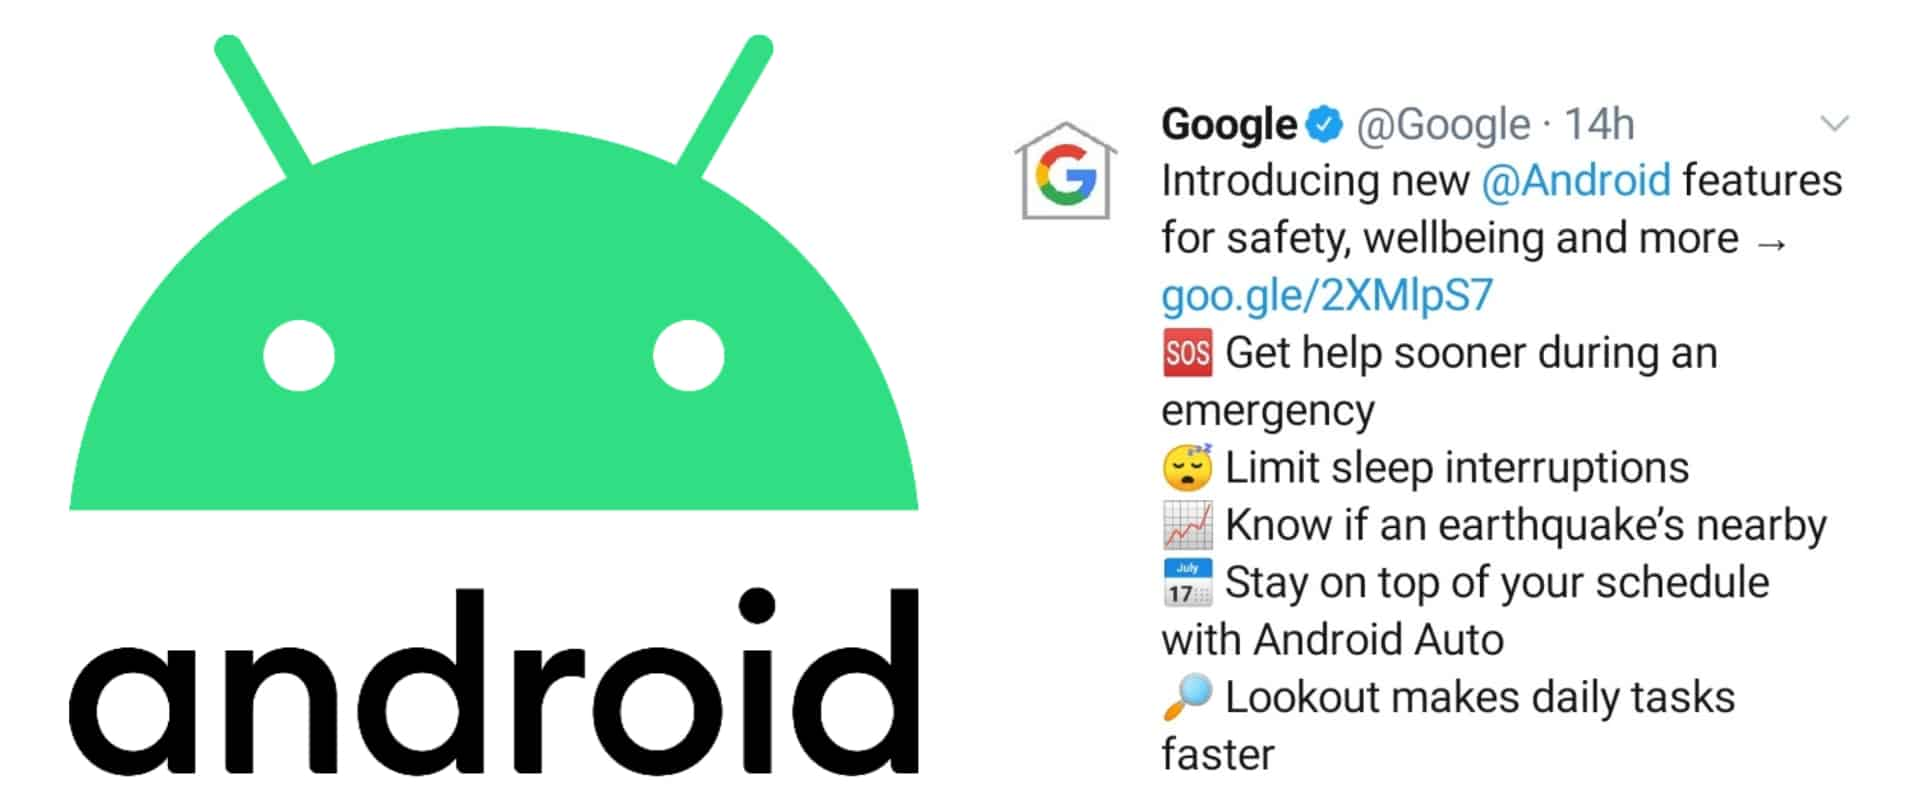 Google Introduces 5 New Android Features For Safety and Wellbeing